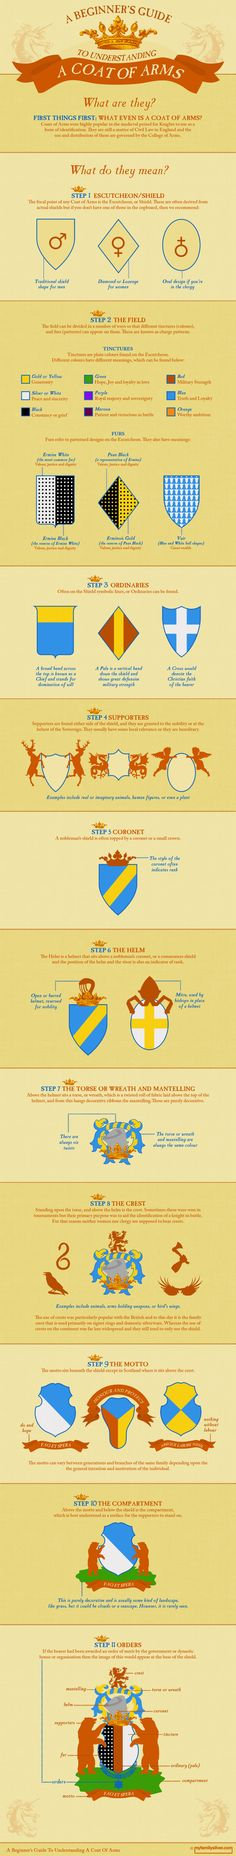 Thought for Tuesday: Who doesn't need their own Coat of Arms? Beginner's Guide to Understanding a Coat of Arms Infographic